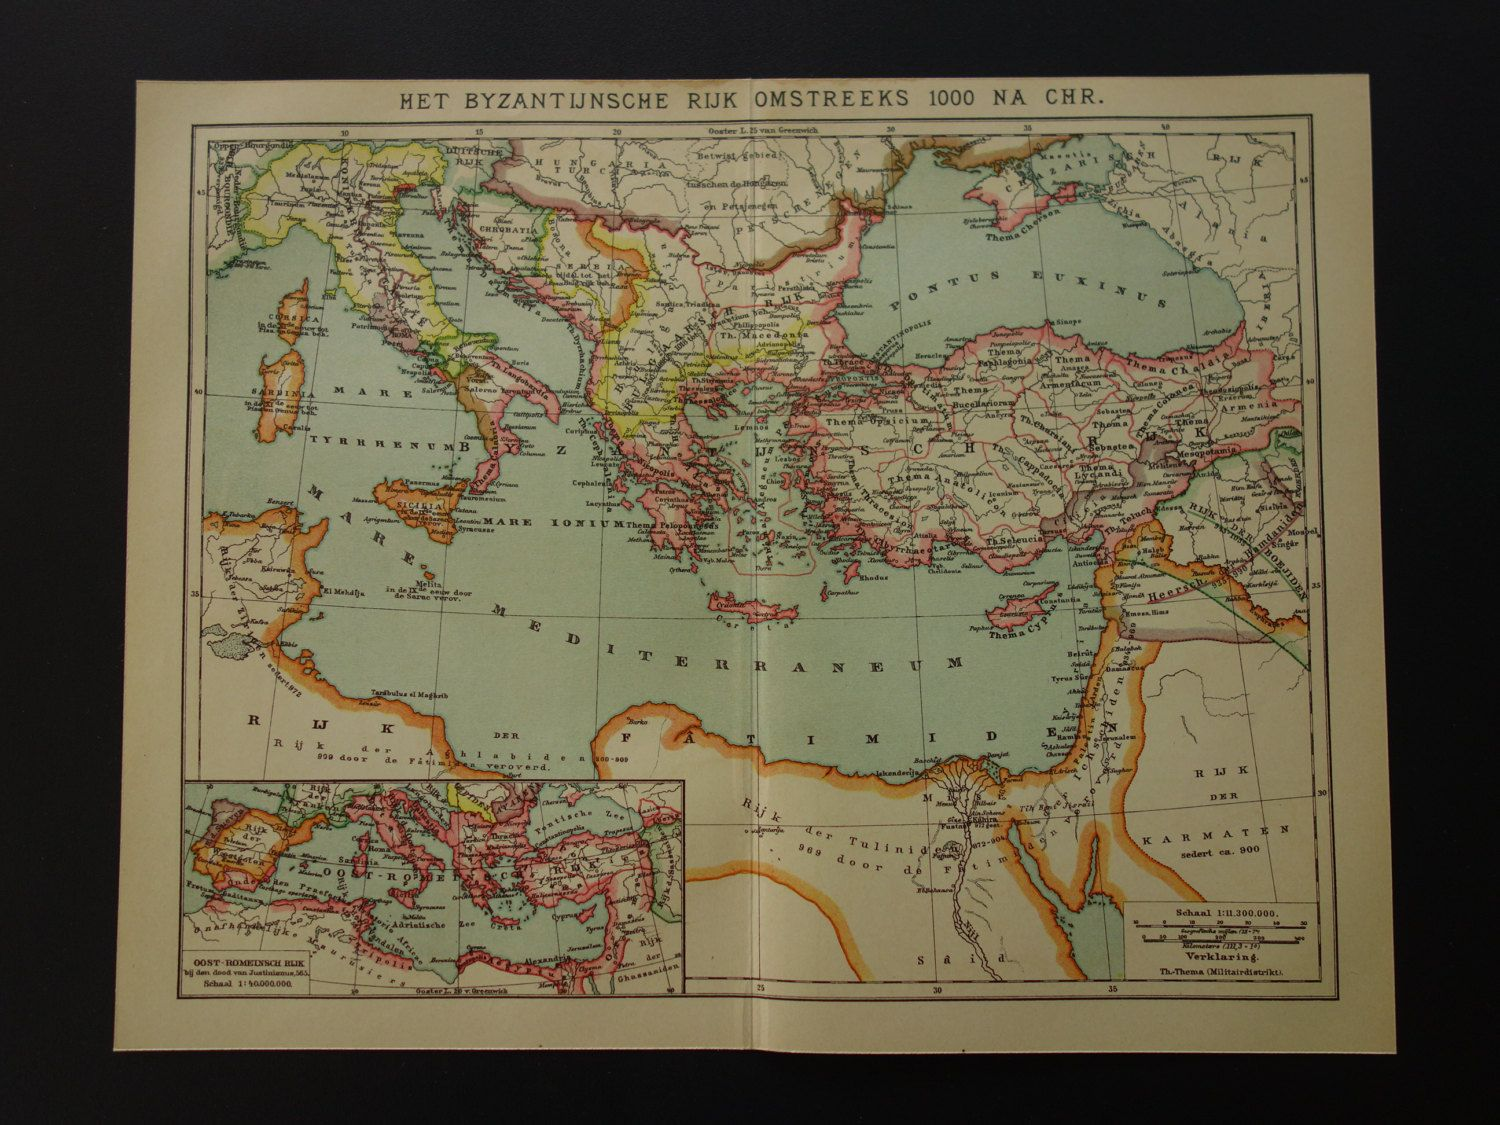 57 best antique maps of italy images on pinterest antique maps antique map of the byzantine empire original 1906 old historic poster about east roman borders gumiabroncs Image collections